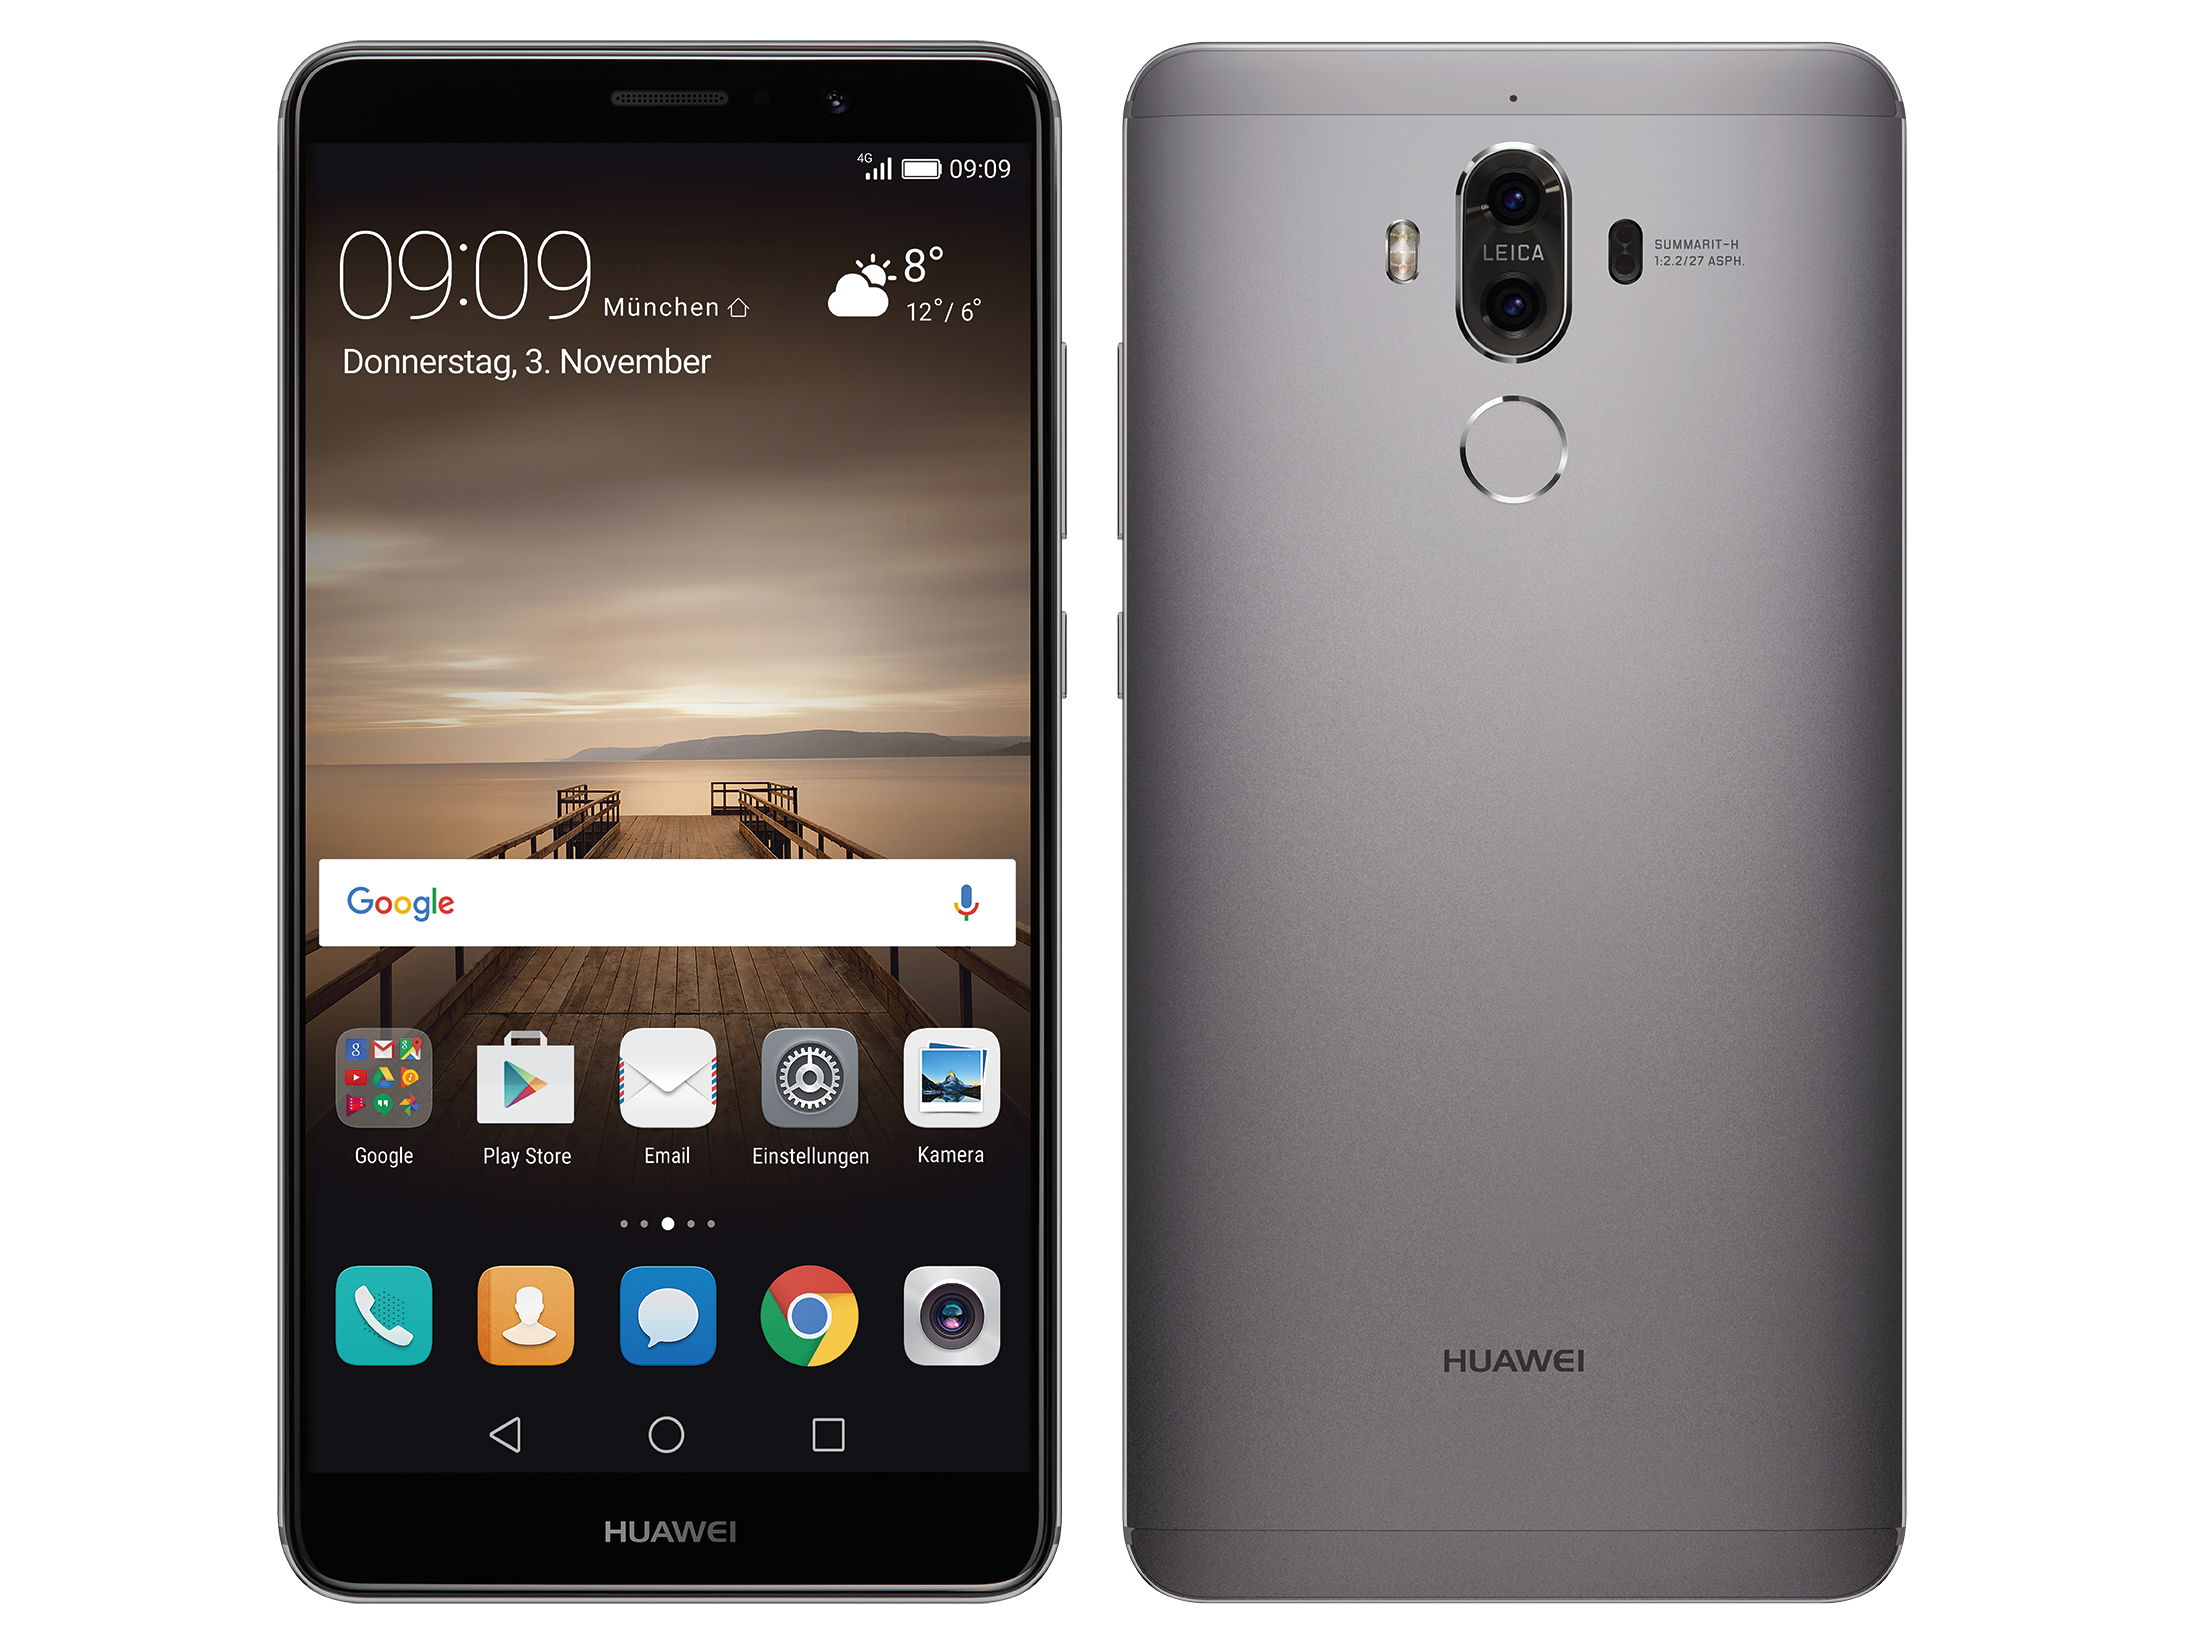 Huawei Mate 9 Comes With Next Generation Leica Dual Cam Digital Nokia 130 Kamera New Photography Review